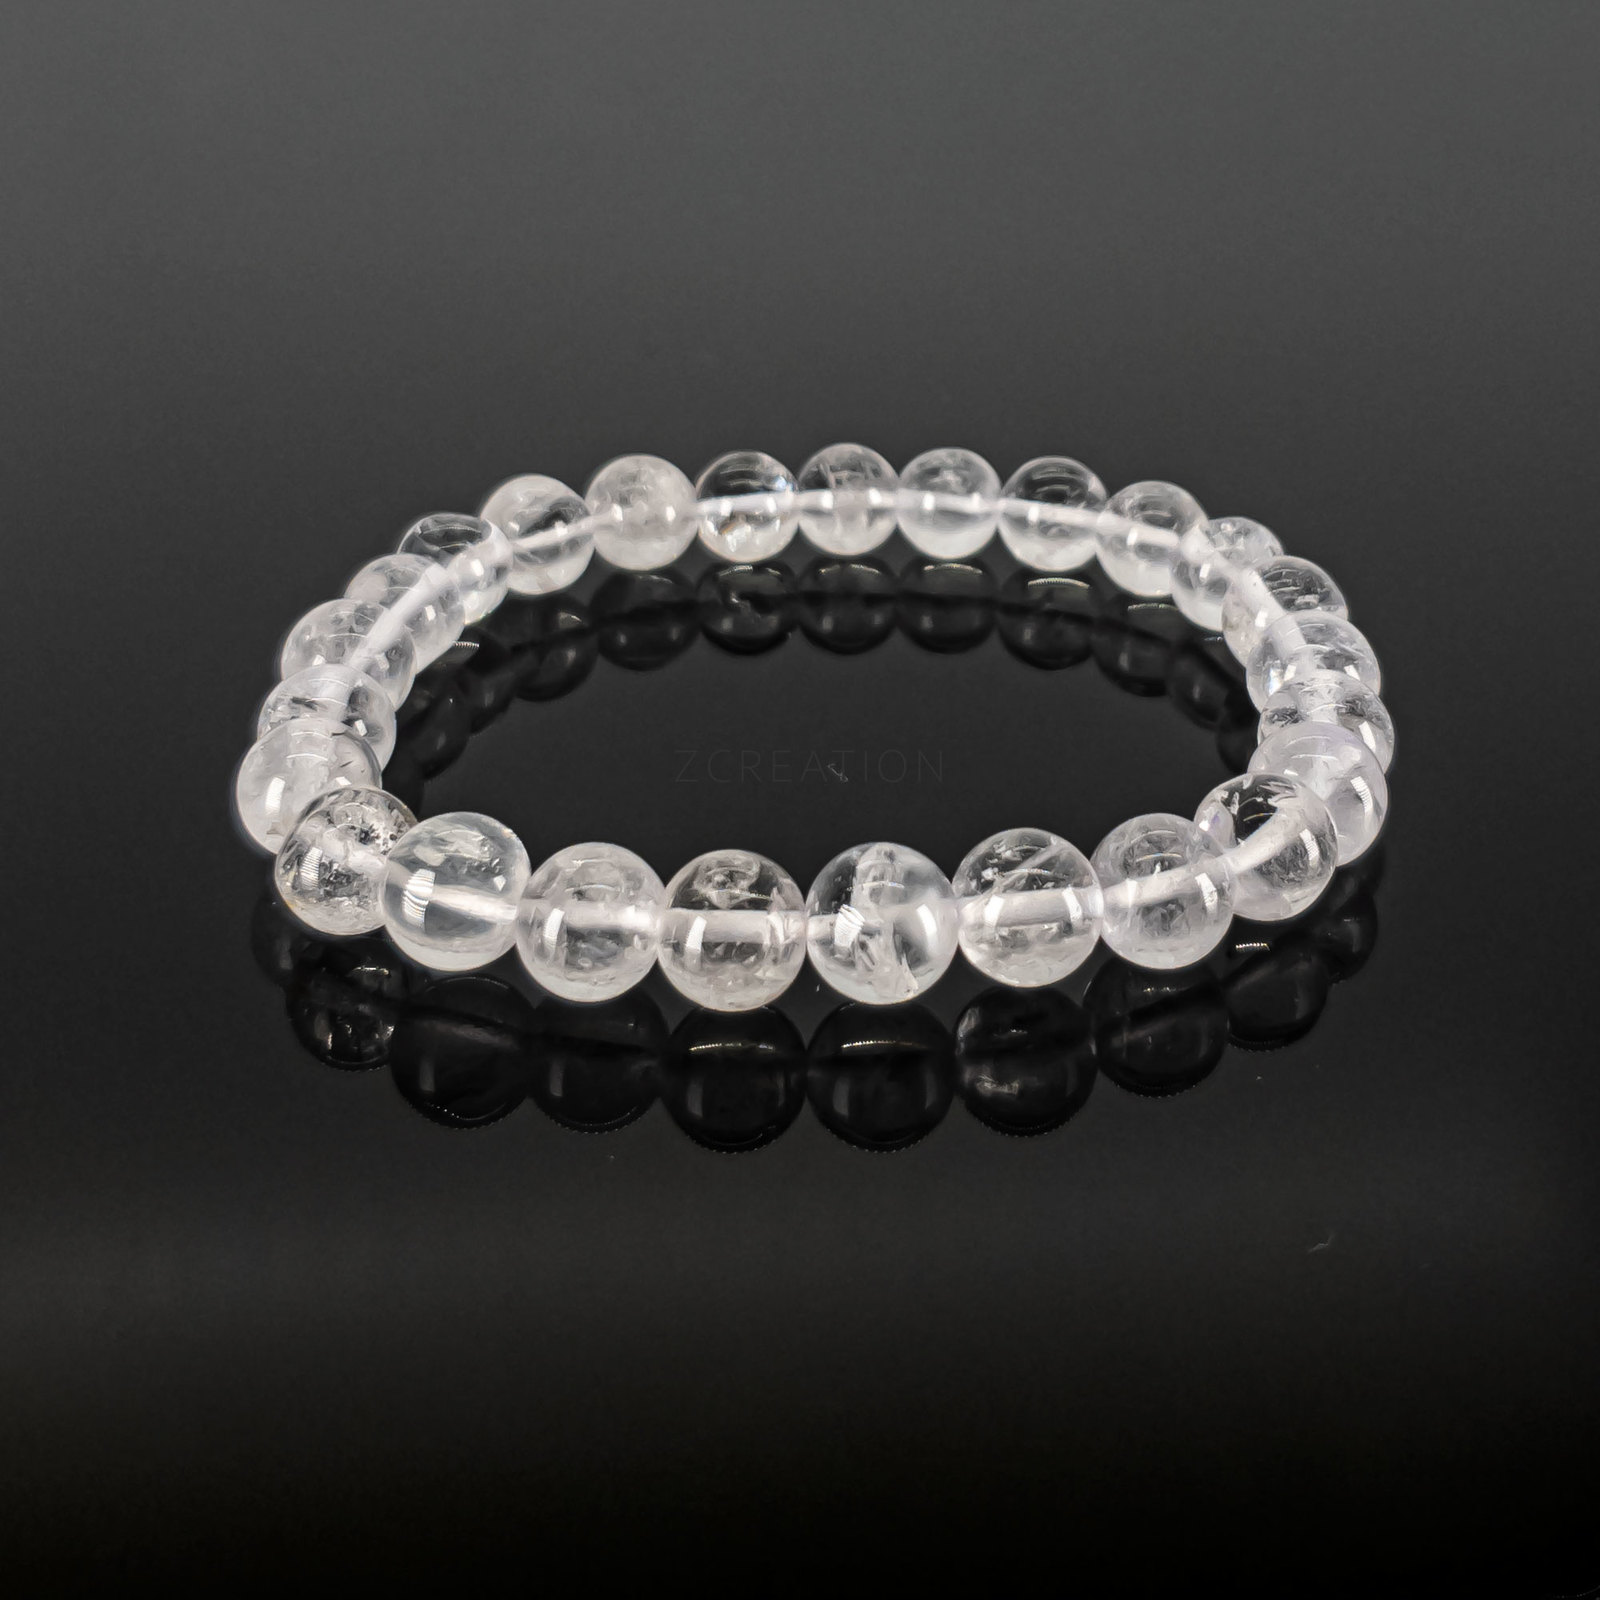 Primary image for Clear Quartz Round Bead Stretchable Bracelets